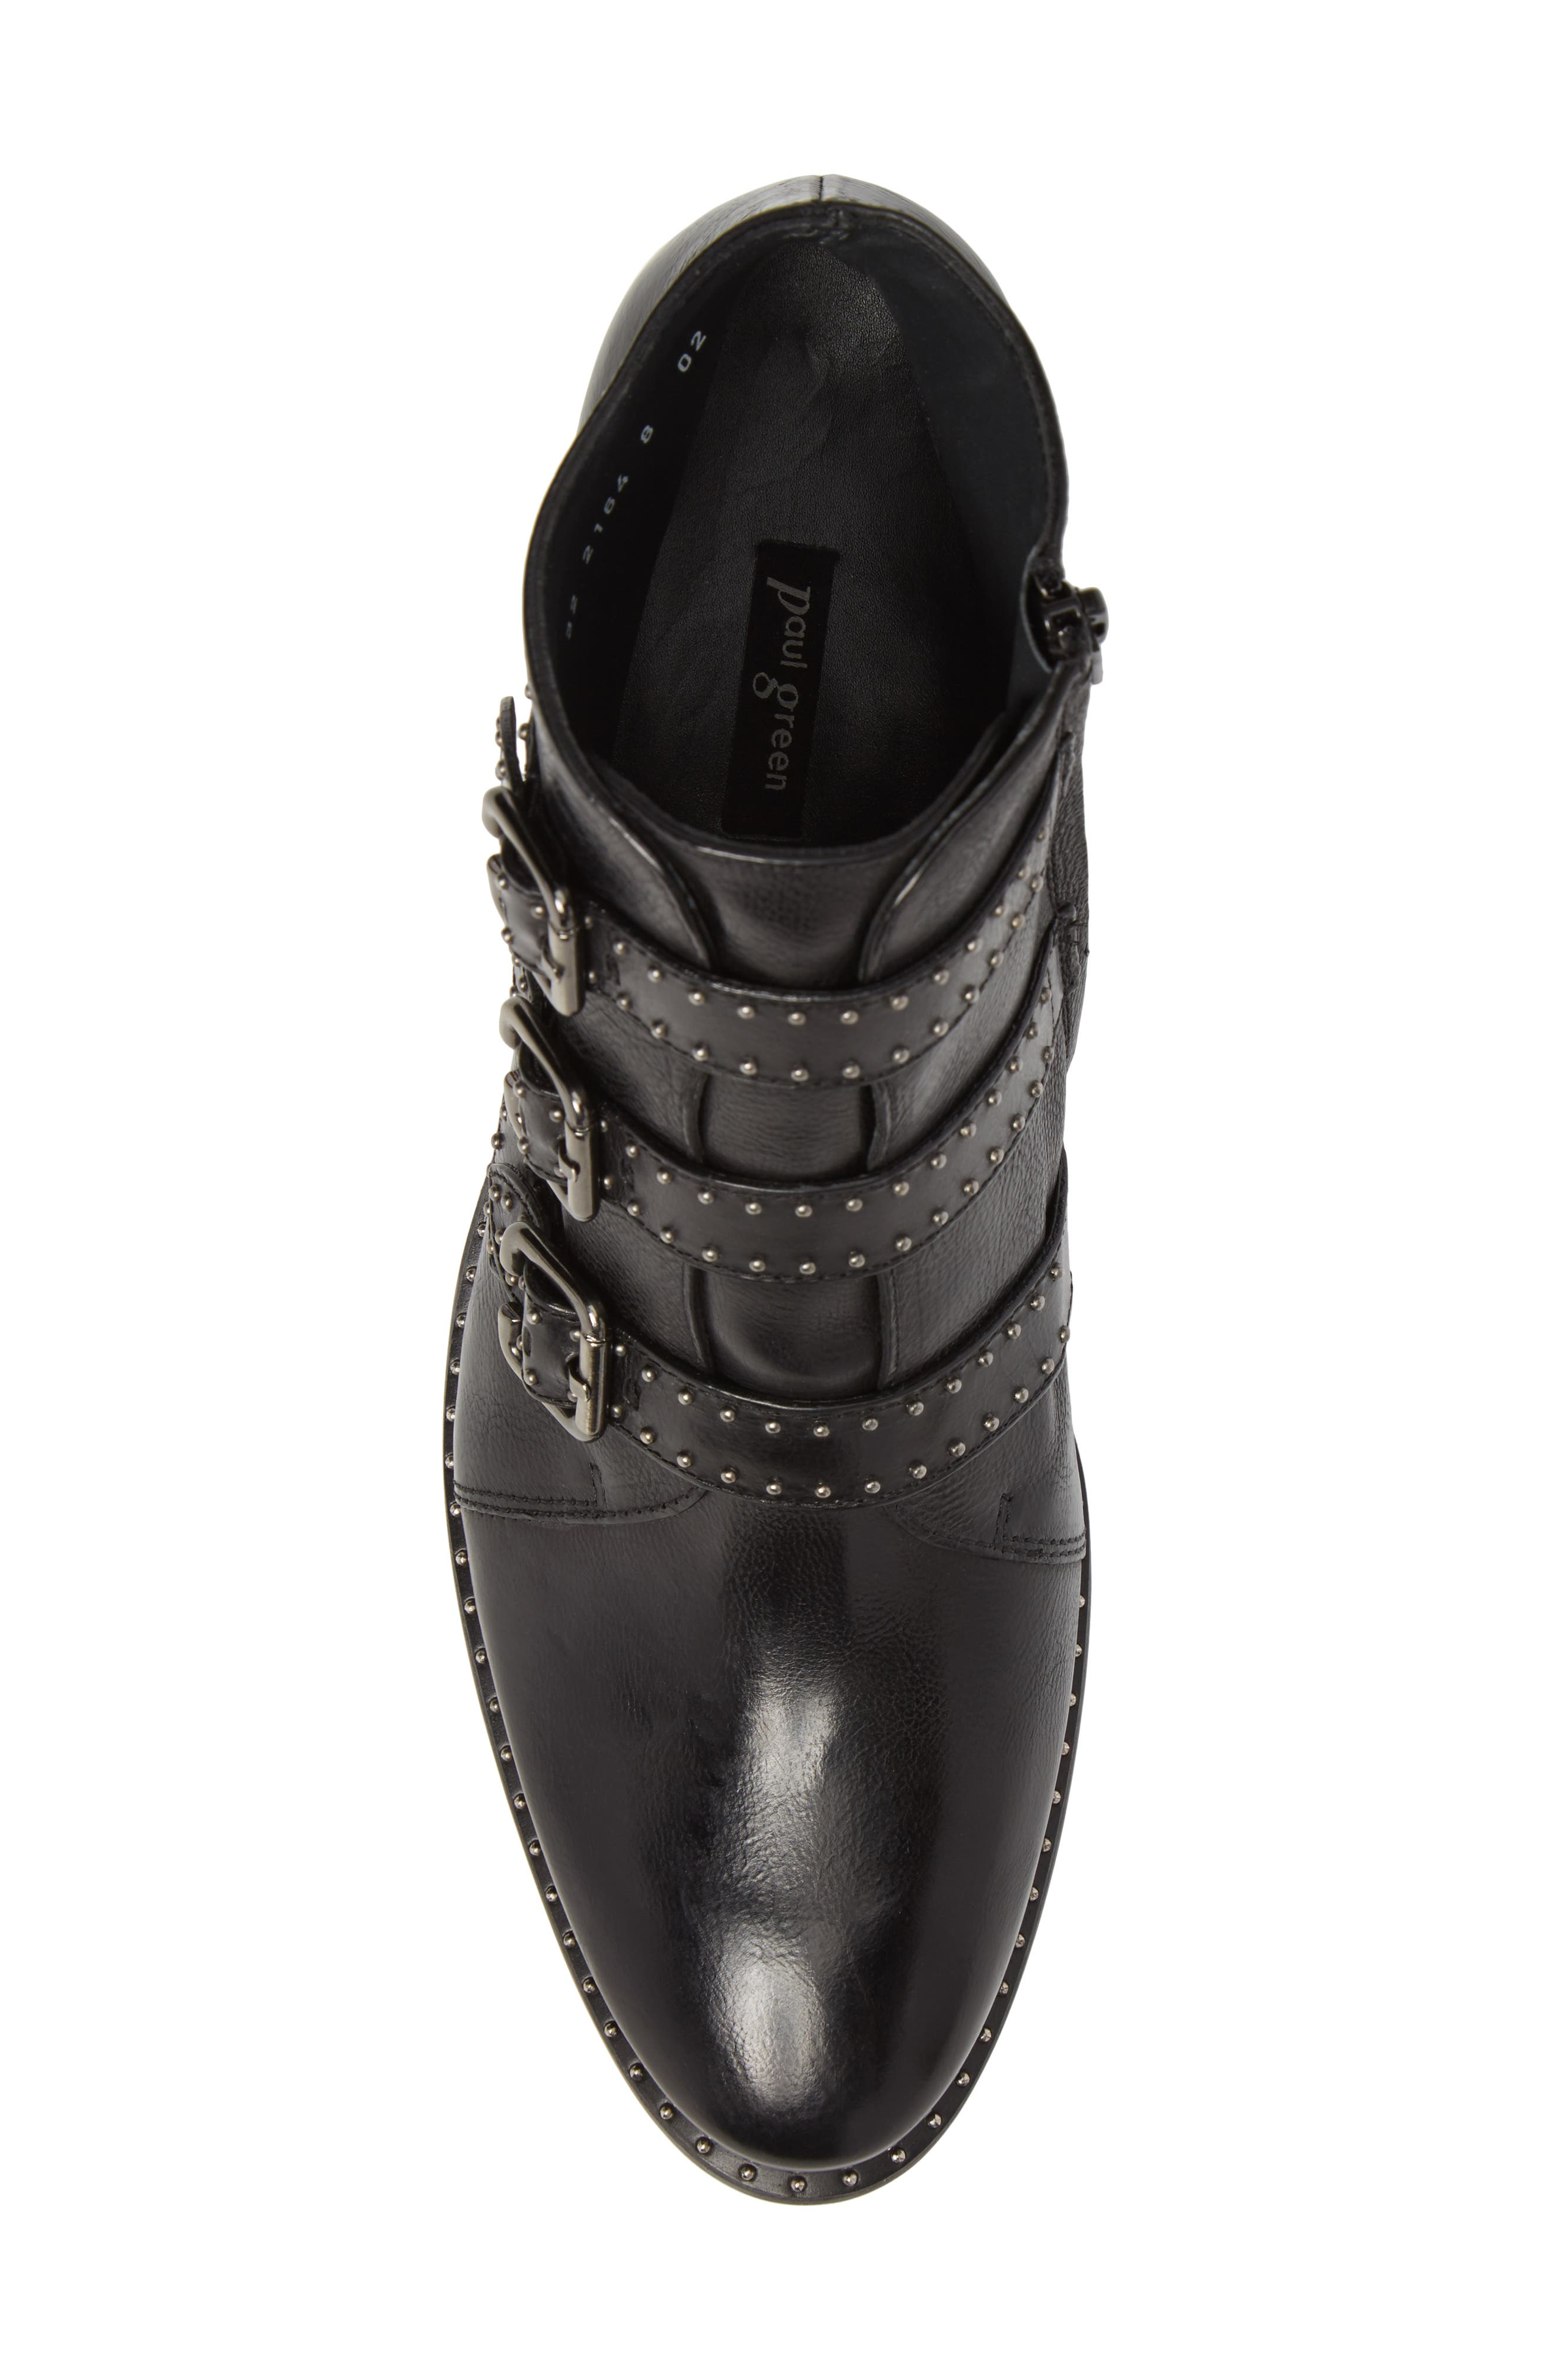 Soho Bootie,                             Alternate thumbnail 5, color,                             BLACK LEATHER